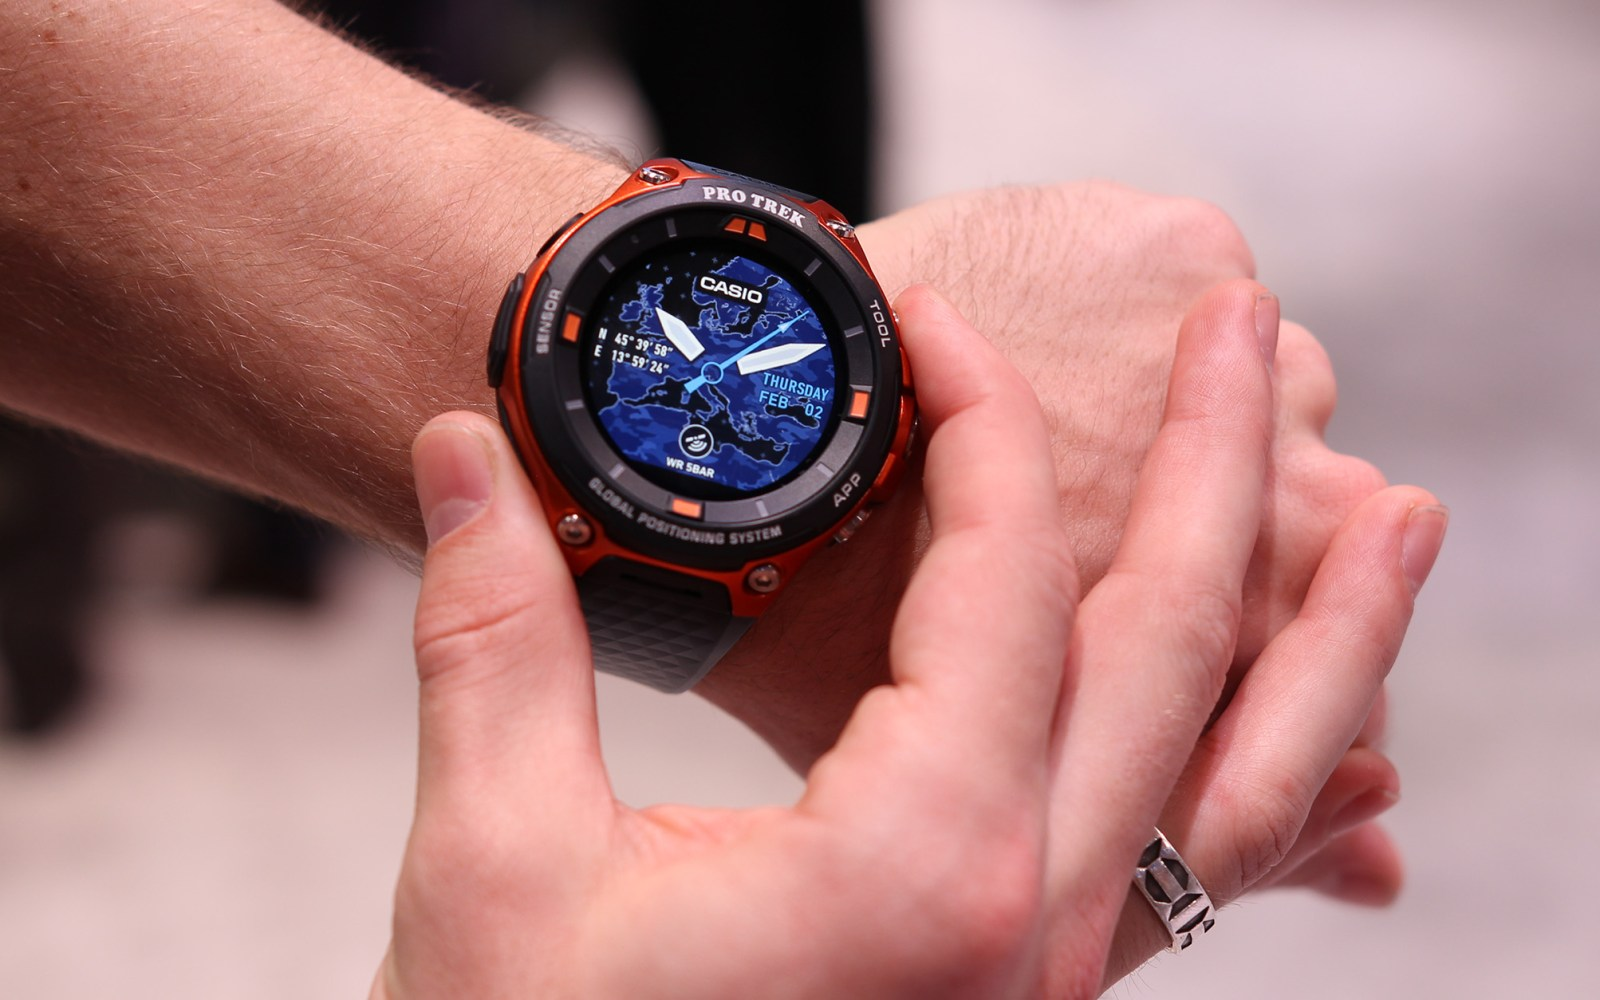 Hands on: Casio's latest rugged Android Wear smartwatch runs Android Wear 2.0, somehow got even bigger [Video]